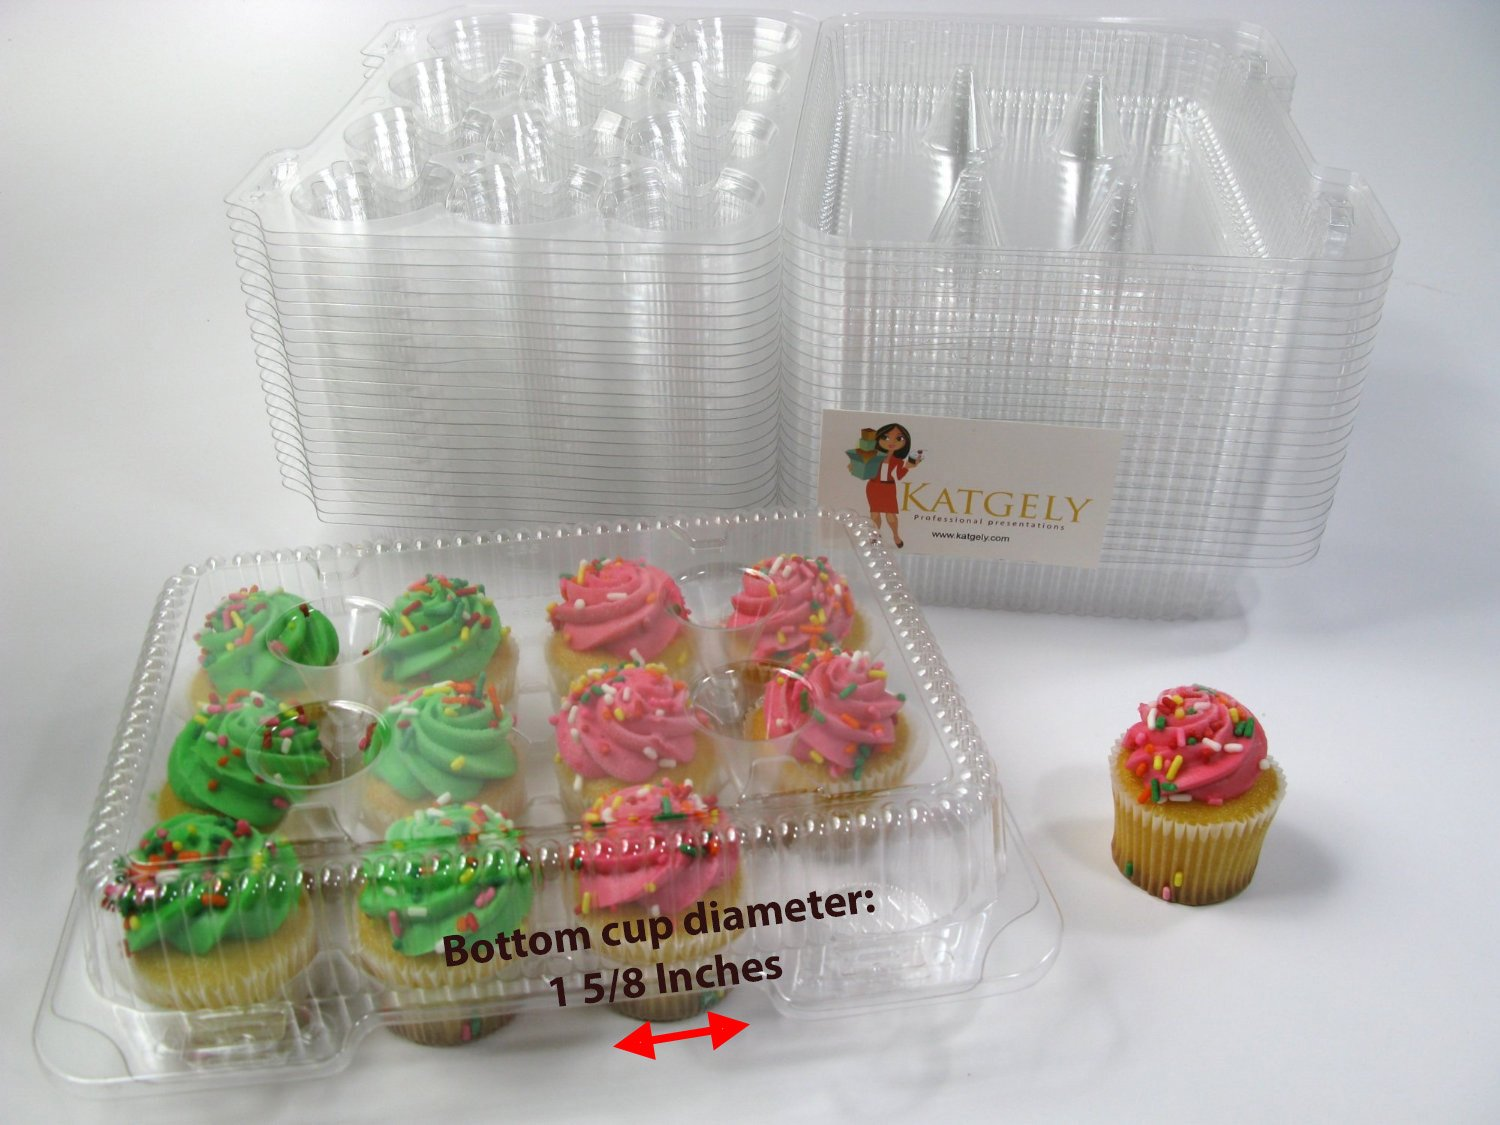 Katgely Mini Cupcake Container for Dozen Mini Cupcakes (Pack of 50) by katgely